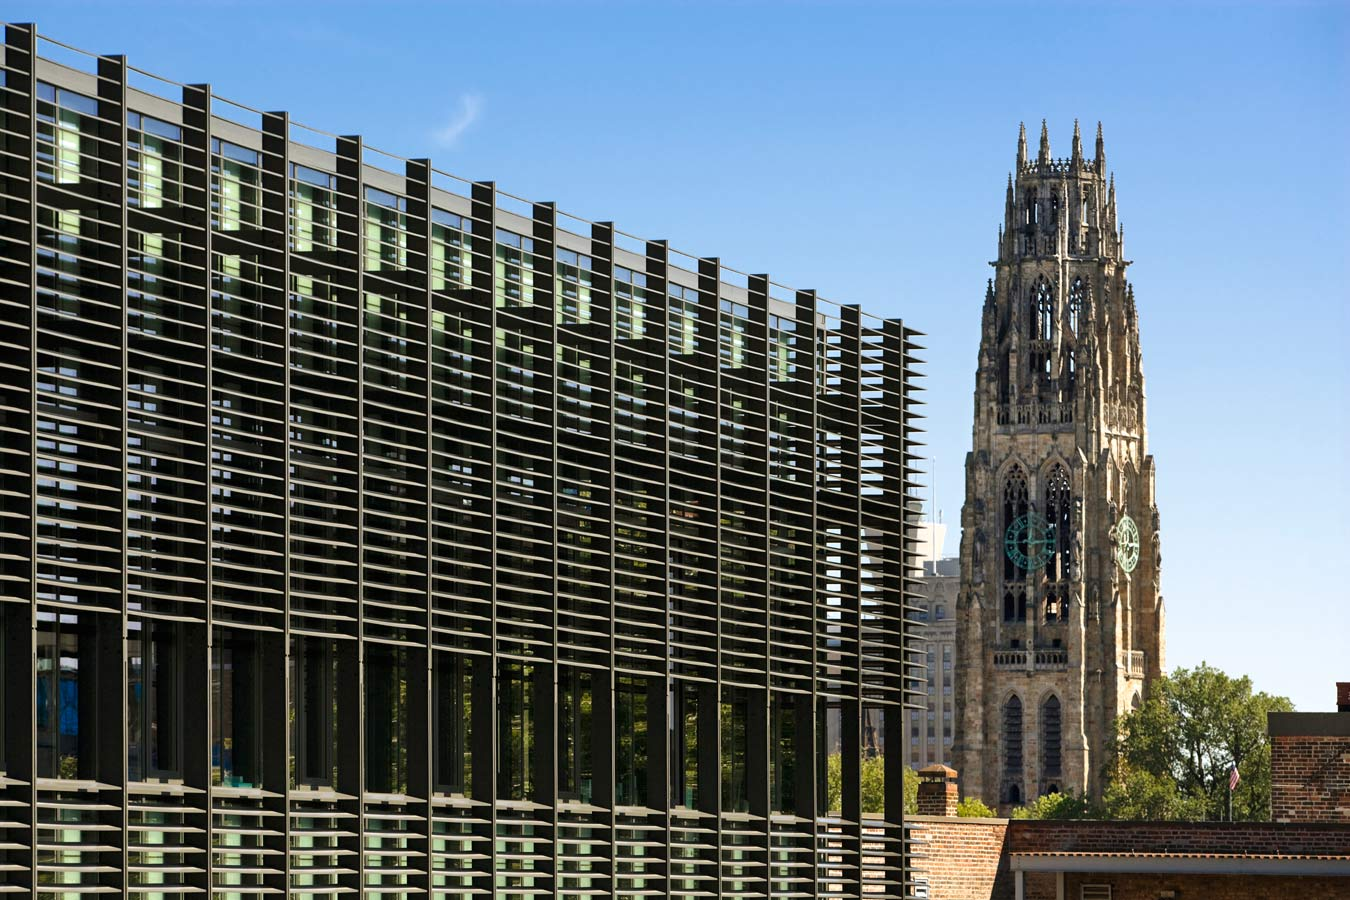 <p>The high-performance envelope of the sculpture building, designed to mitigate solar gain, creates the effect of an elegant contemporary gothic fenestration as seen against Yale's gothic structures beyond. <br><small>© Peter Aaron/OTTO</small></p>